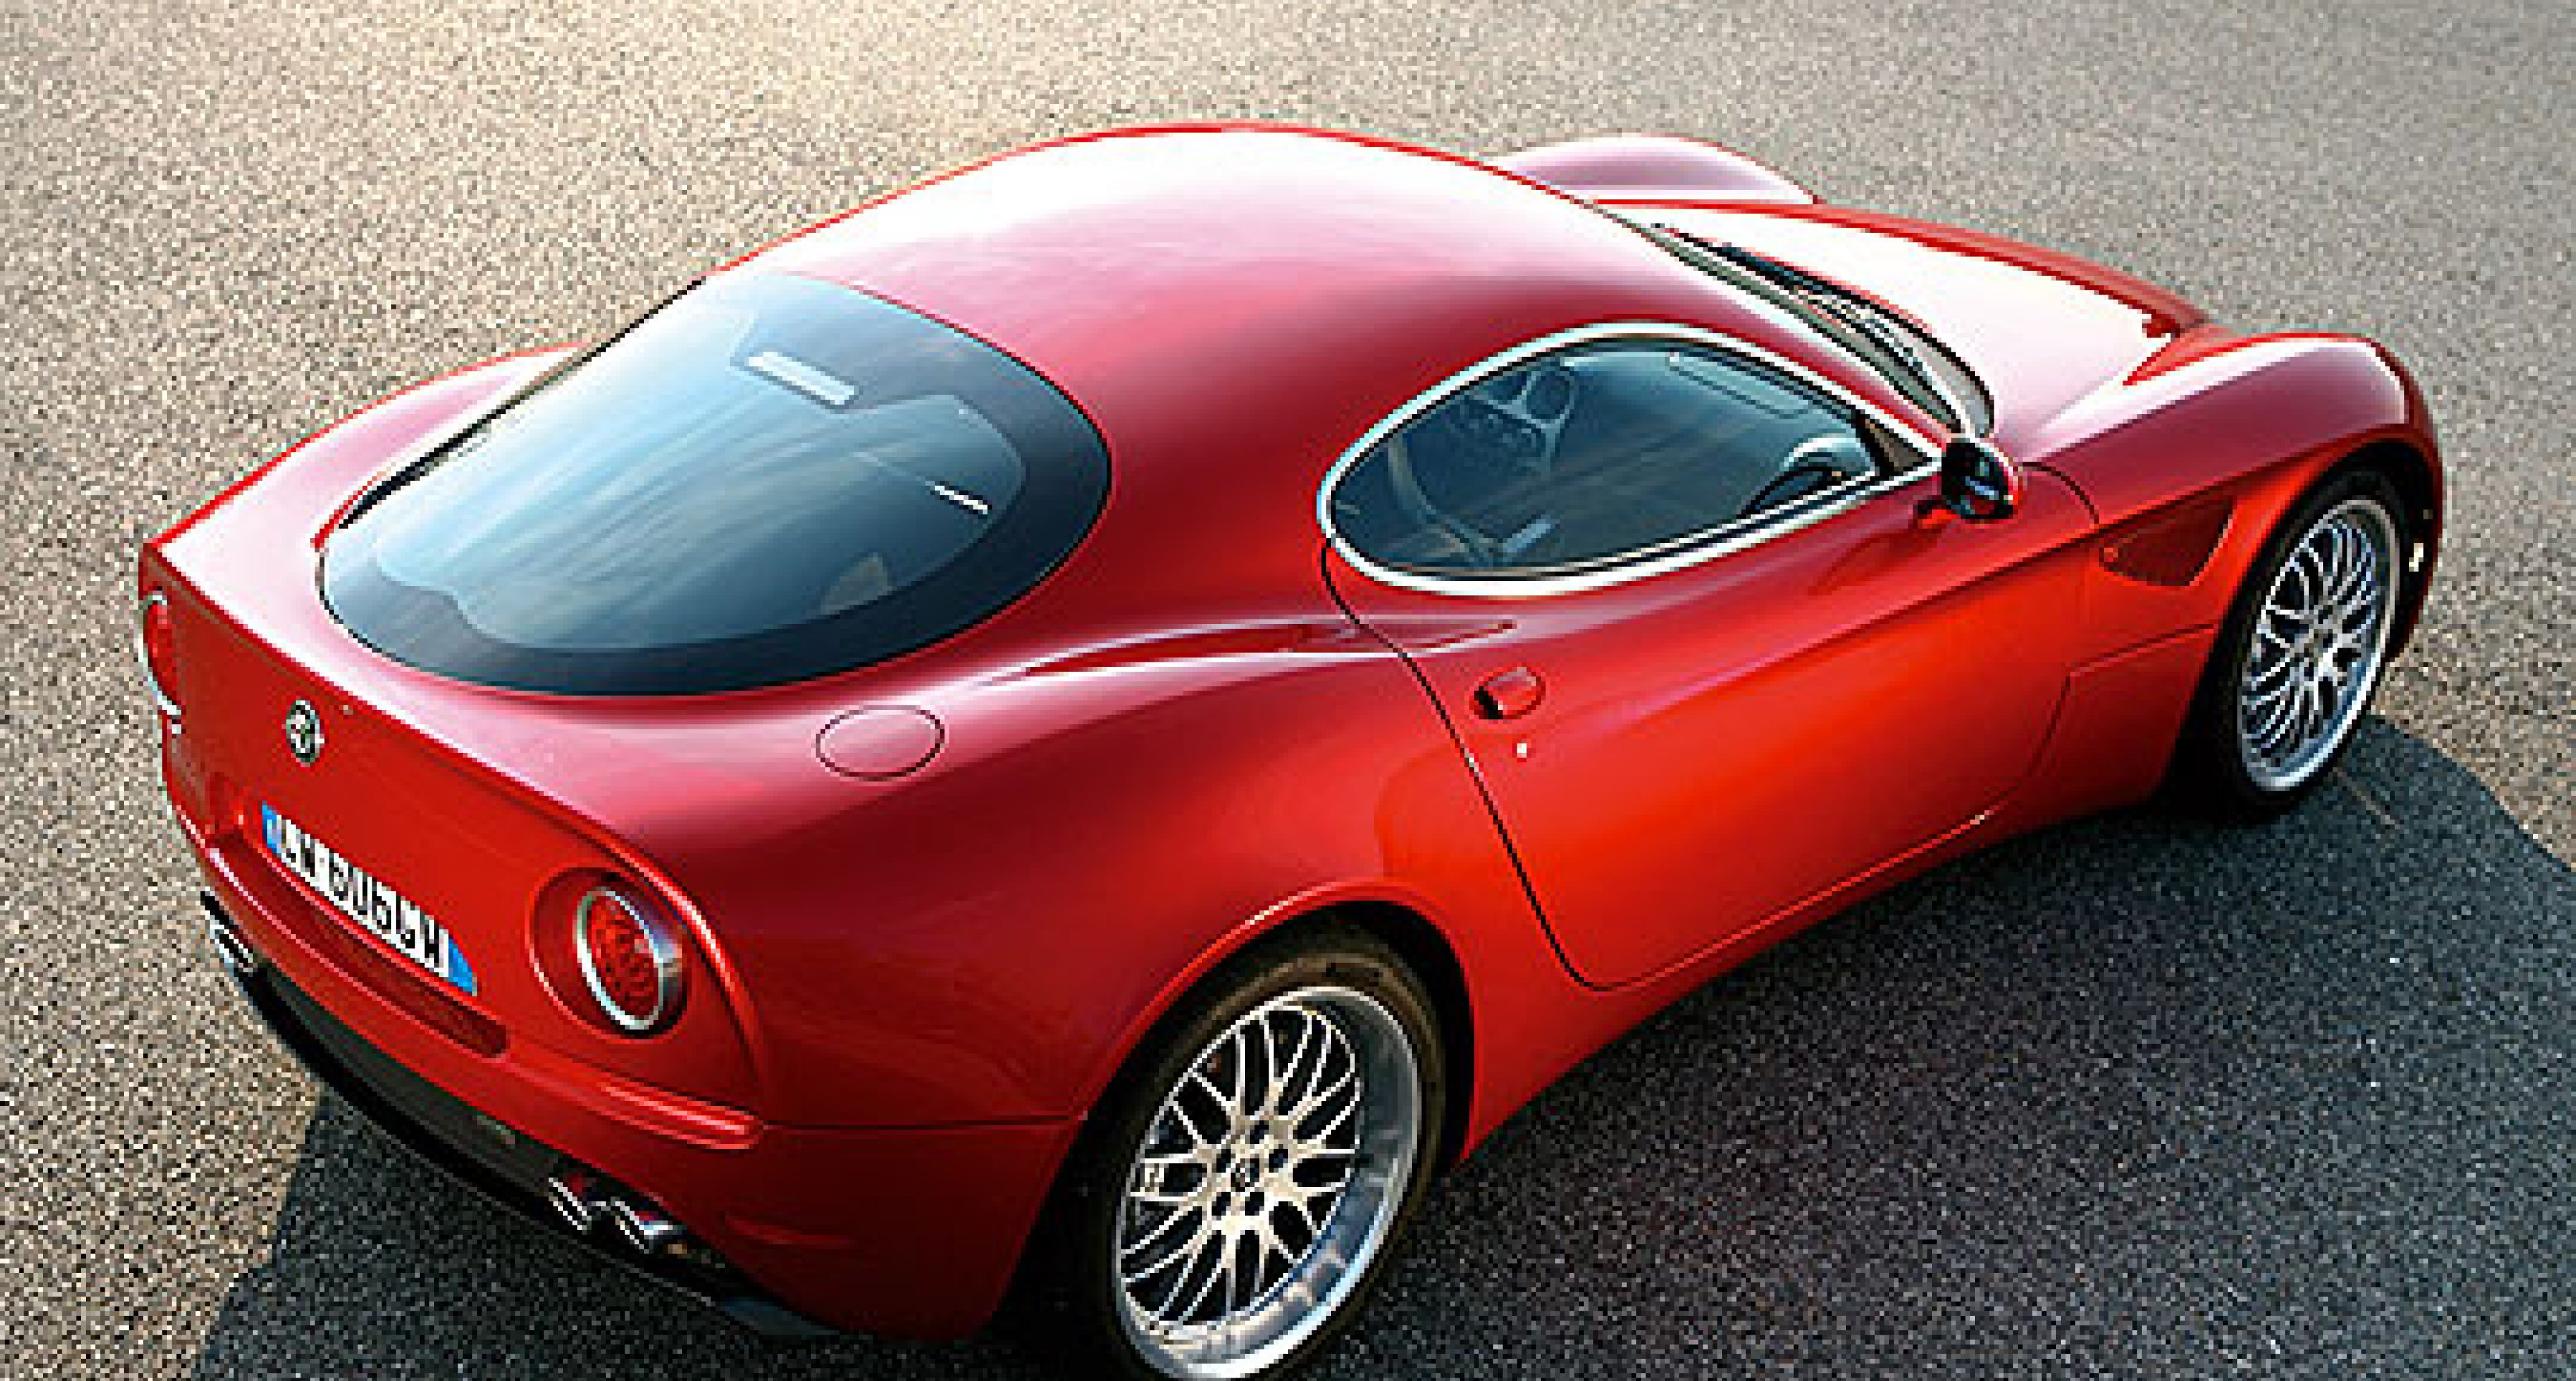 8C Competizione gets green light for production and will be at Paris